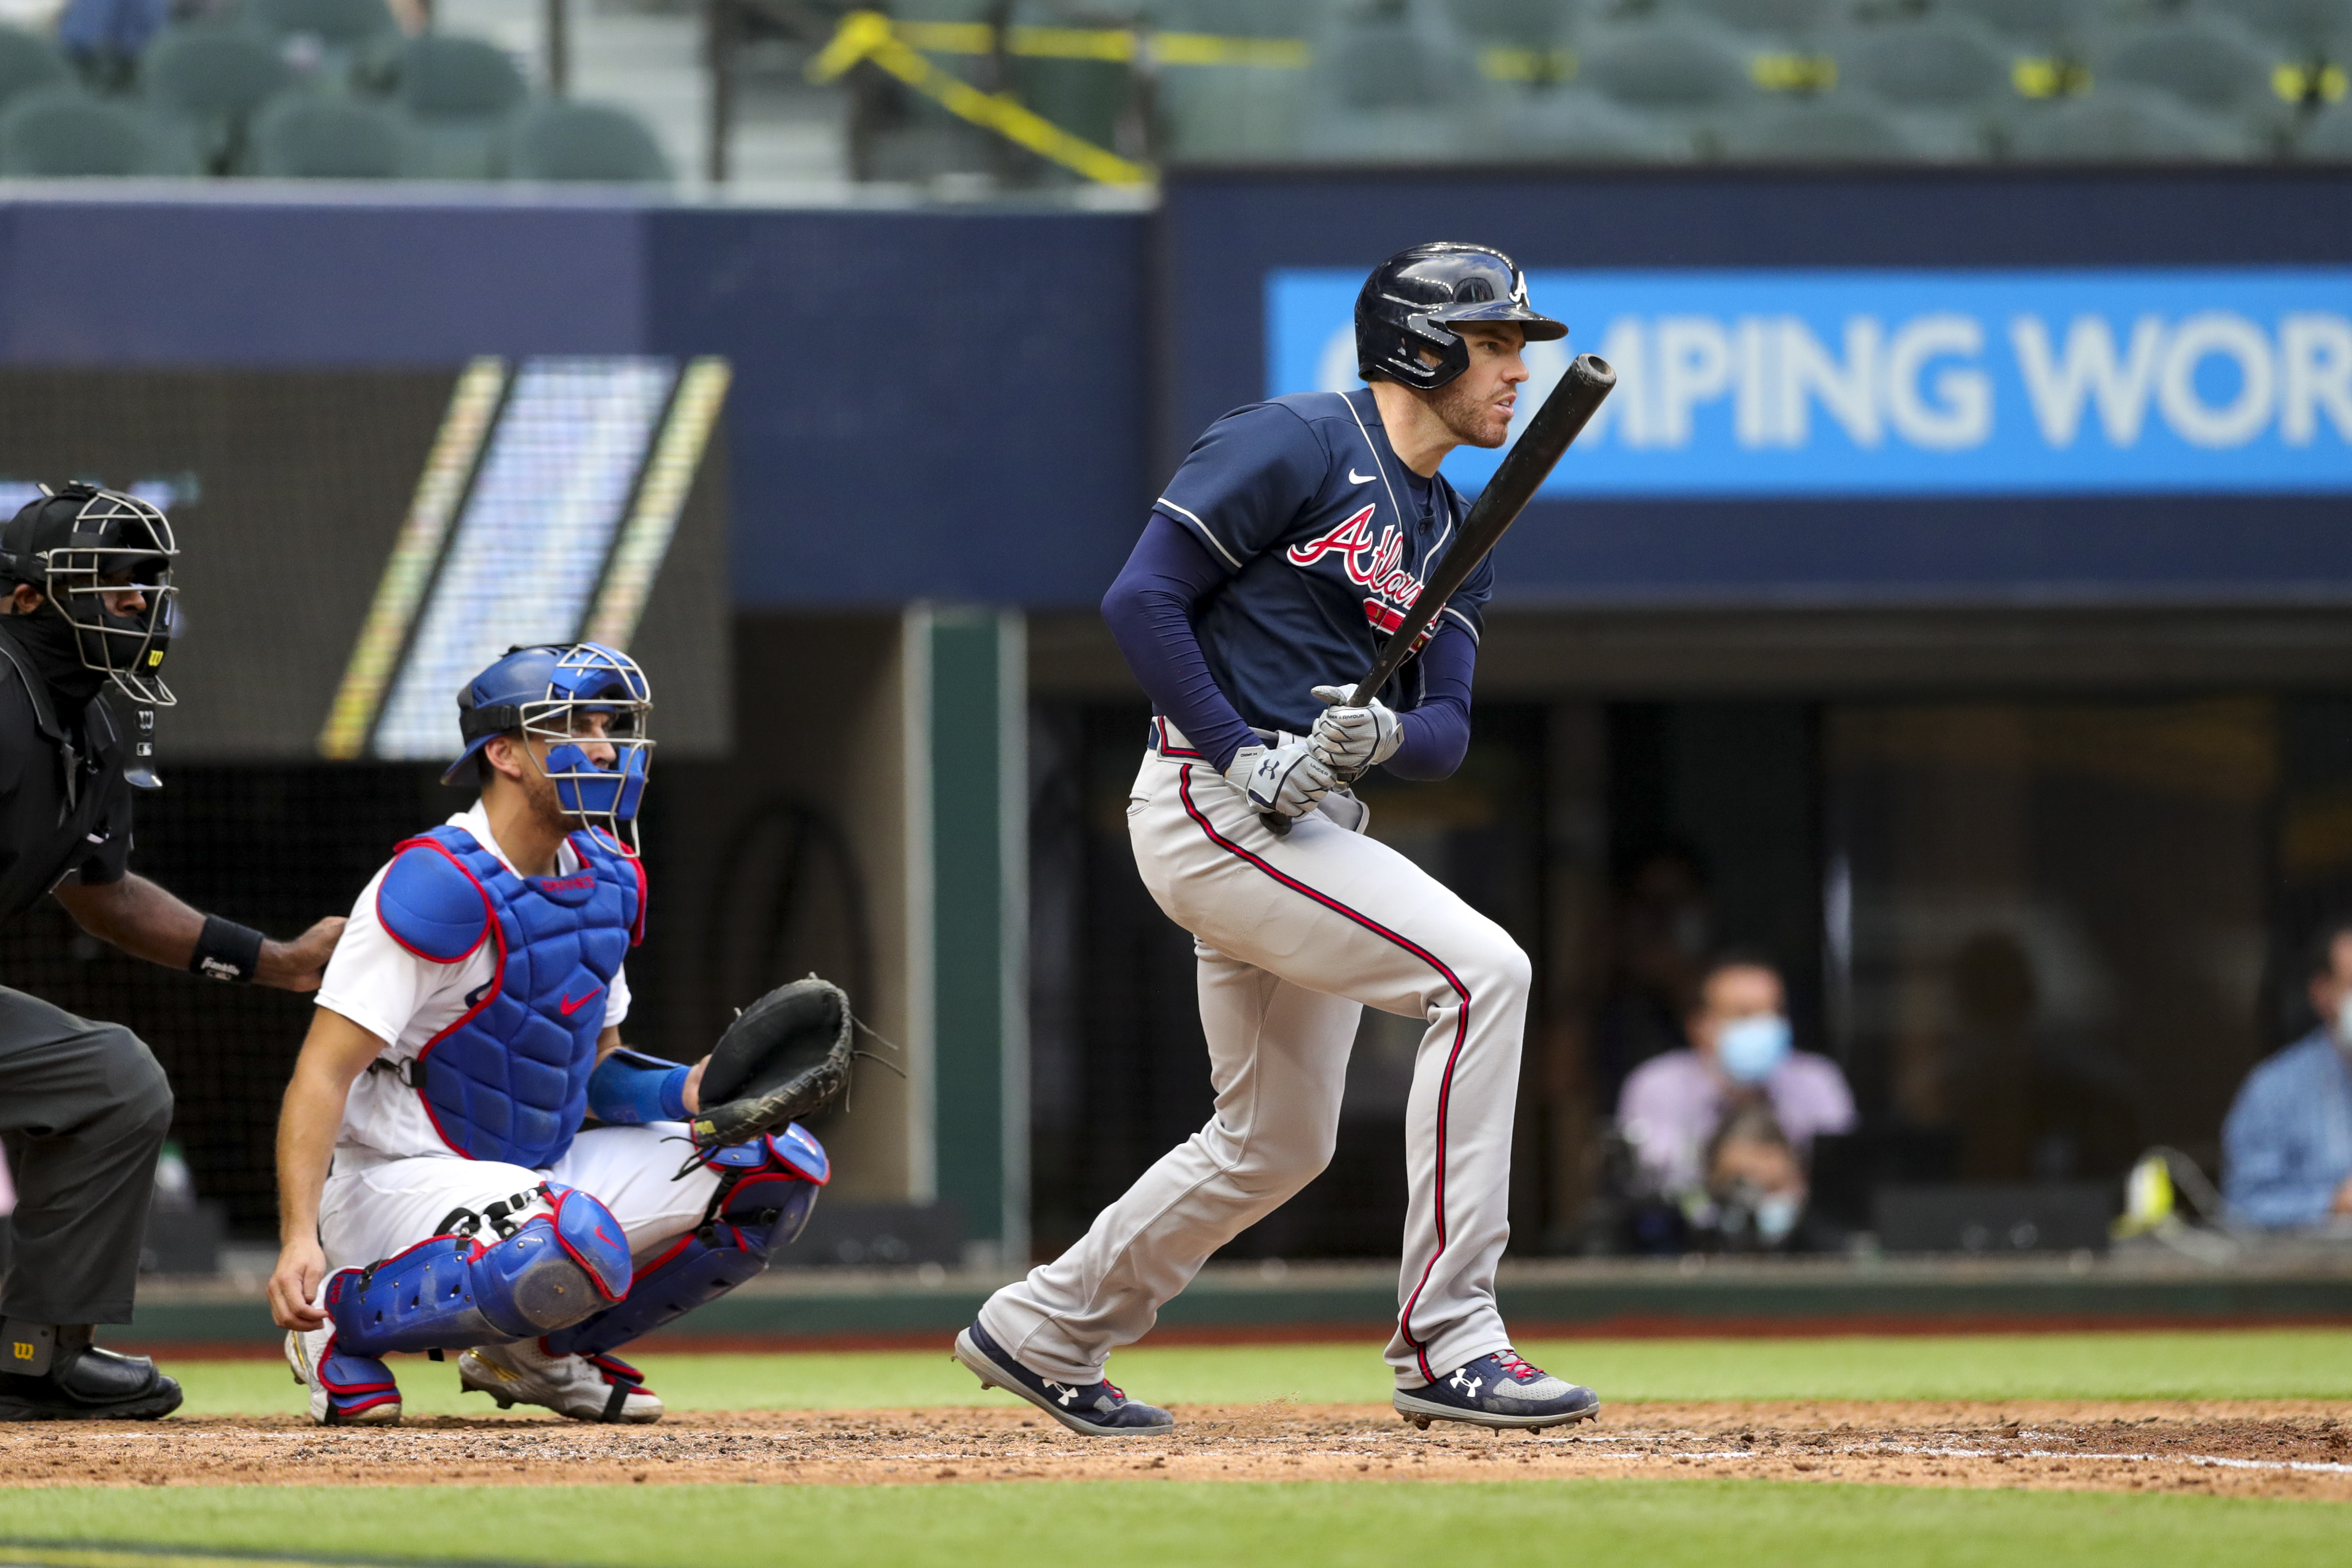 Freddie Freeman #5 of the Atlanta Braves singles in the fifth inning during Game 6 of the NLCS between the Atlanta Braves and the Los Angeles Dodgers at Globe Life Field on Saturday, October 17, 2020 in Arlington, Texas.